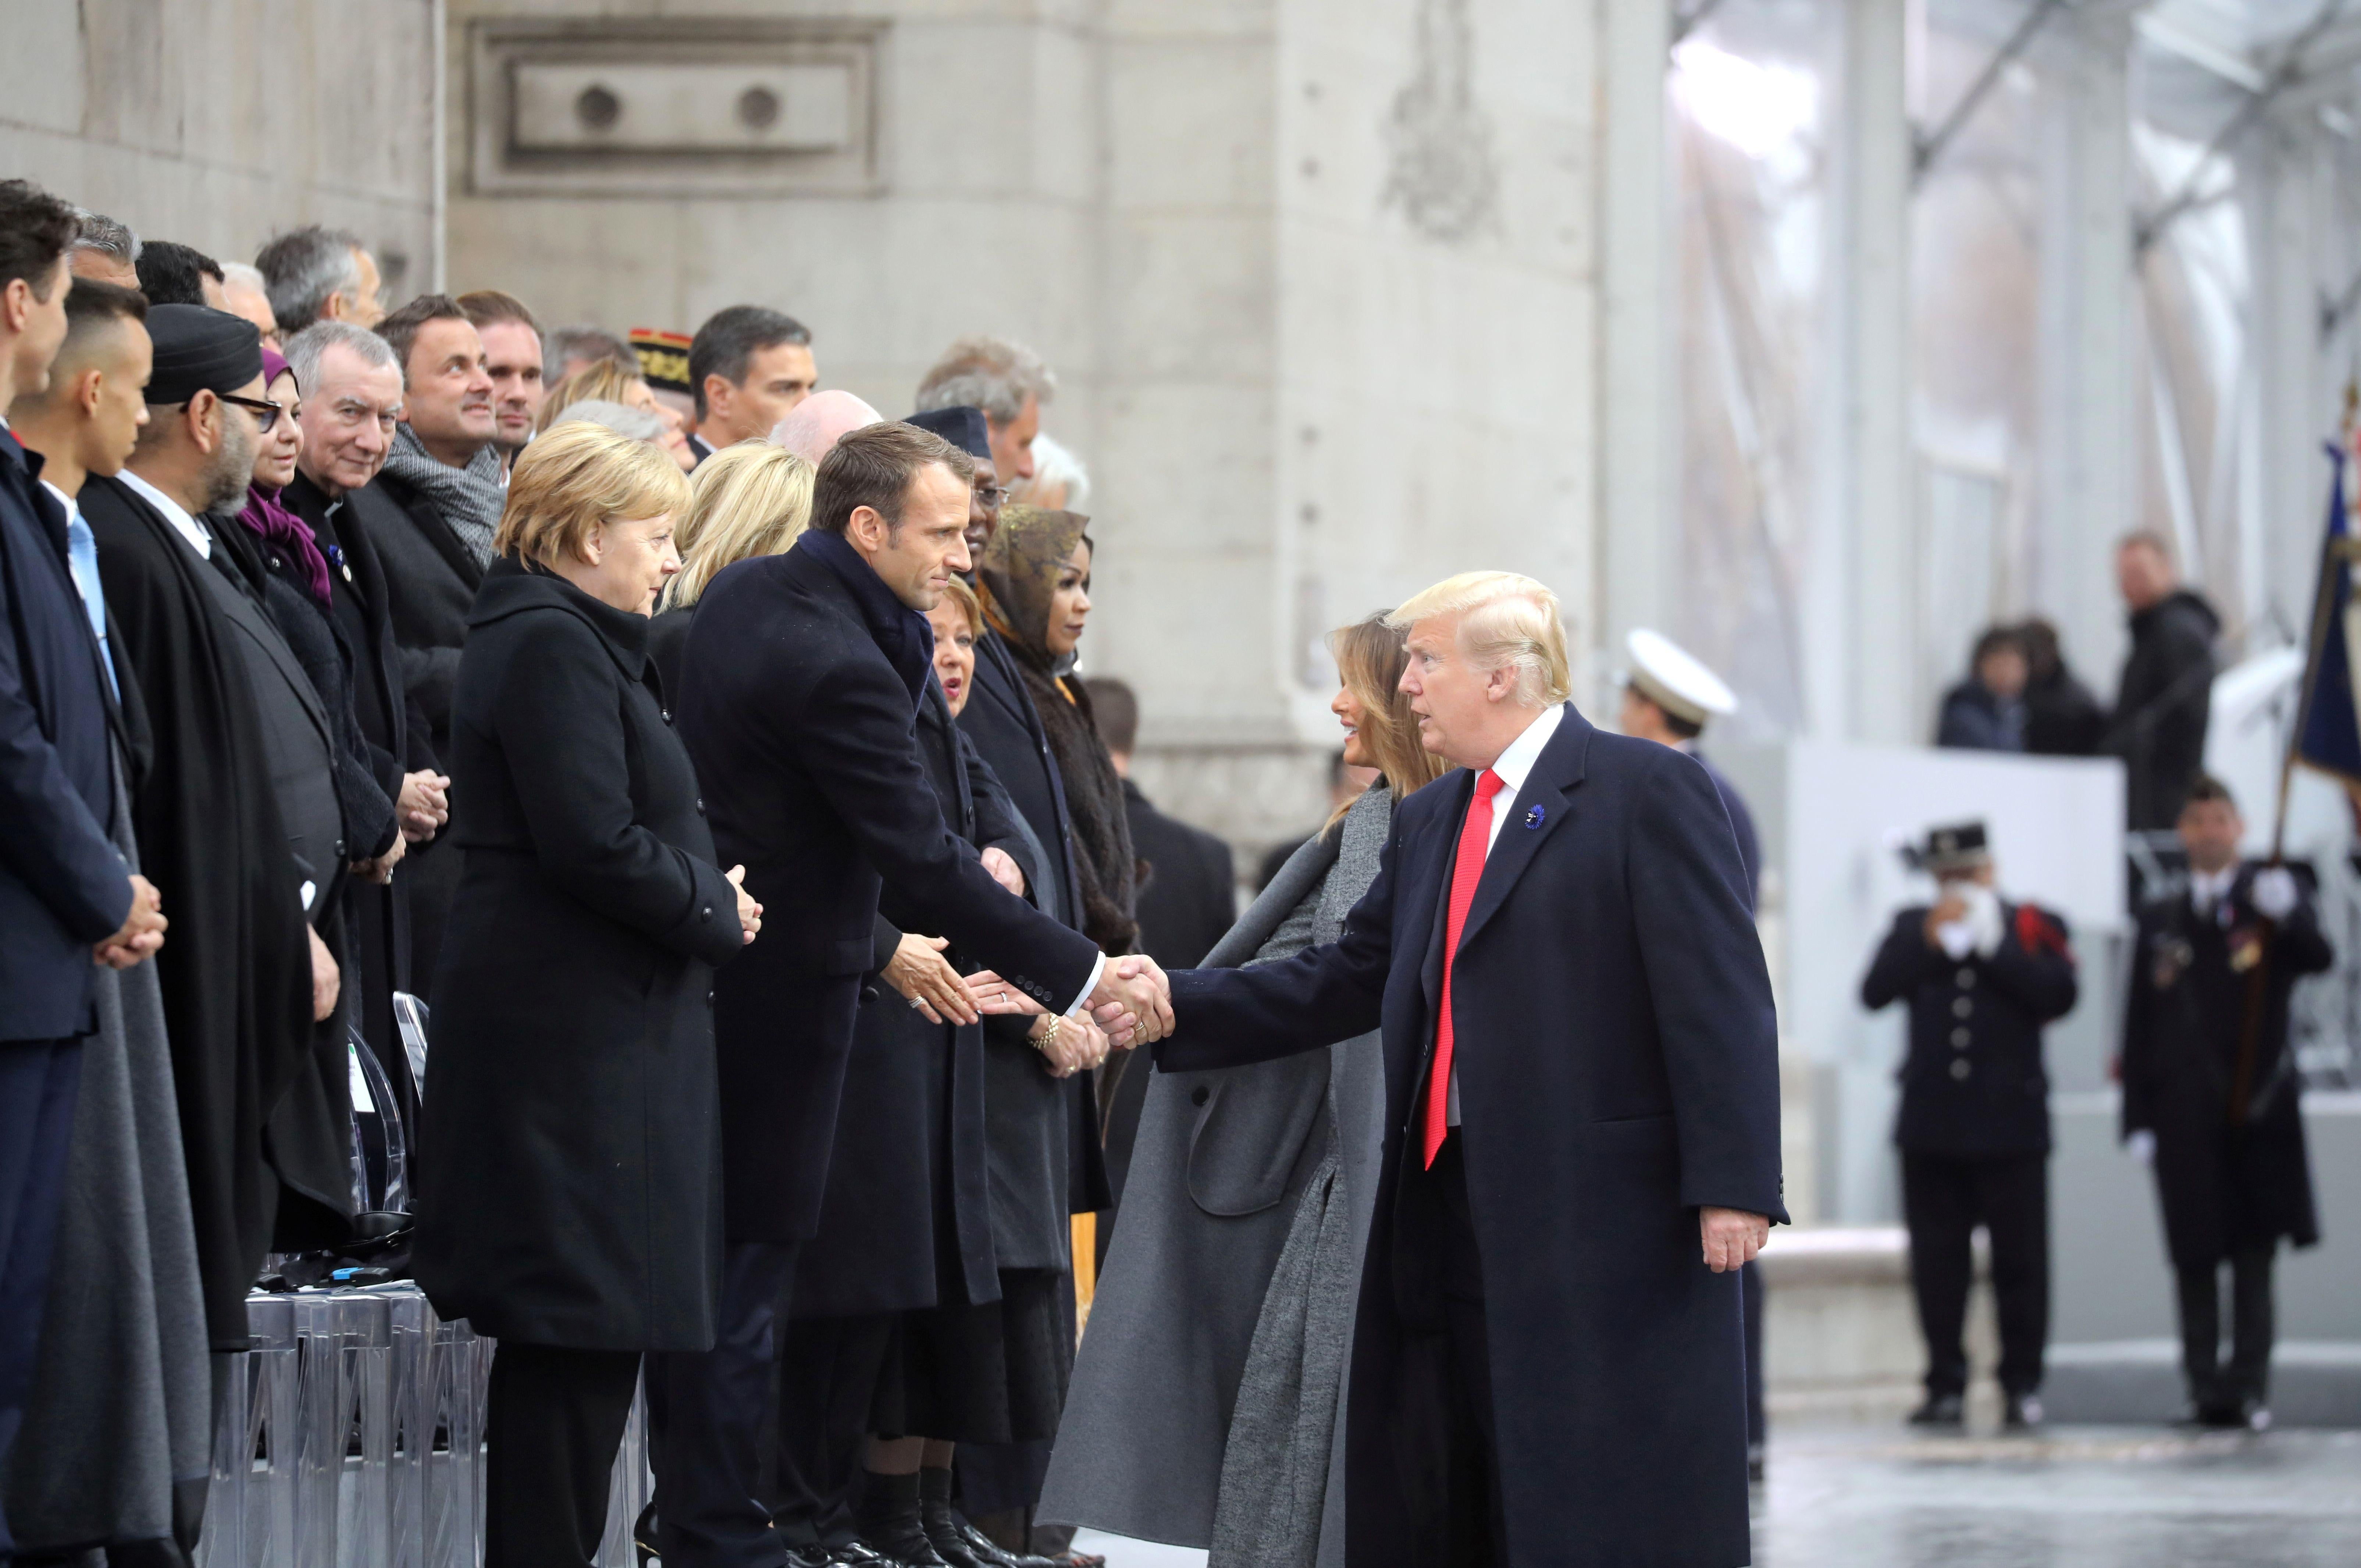 US president Donald Trump shakes hands with French president Emmanuel Macron as he arrives at the Arc de Triomphe in Paris on November 11, 2018 to attend a ceremony as part of commemorations marking the 100th anniversary of the 1918 armistice.